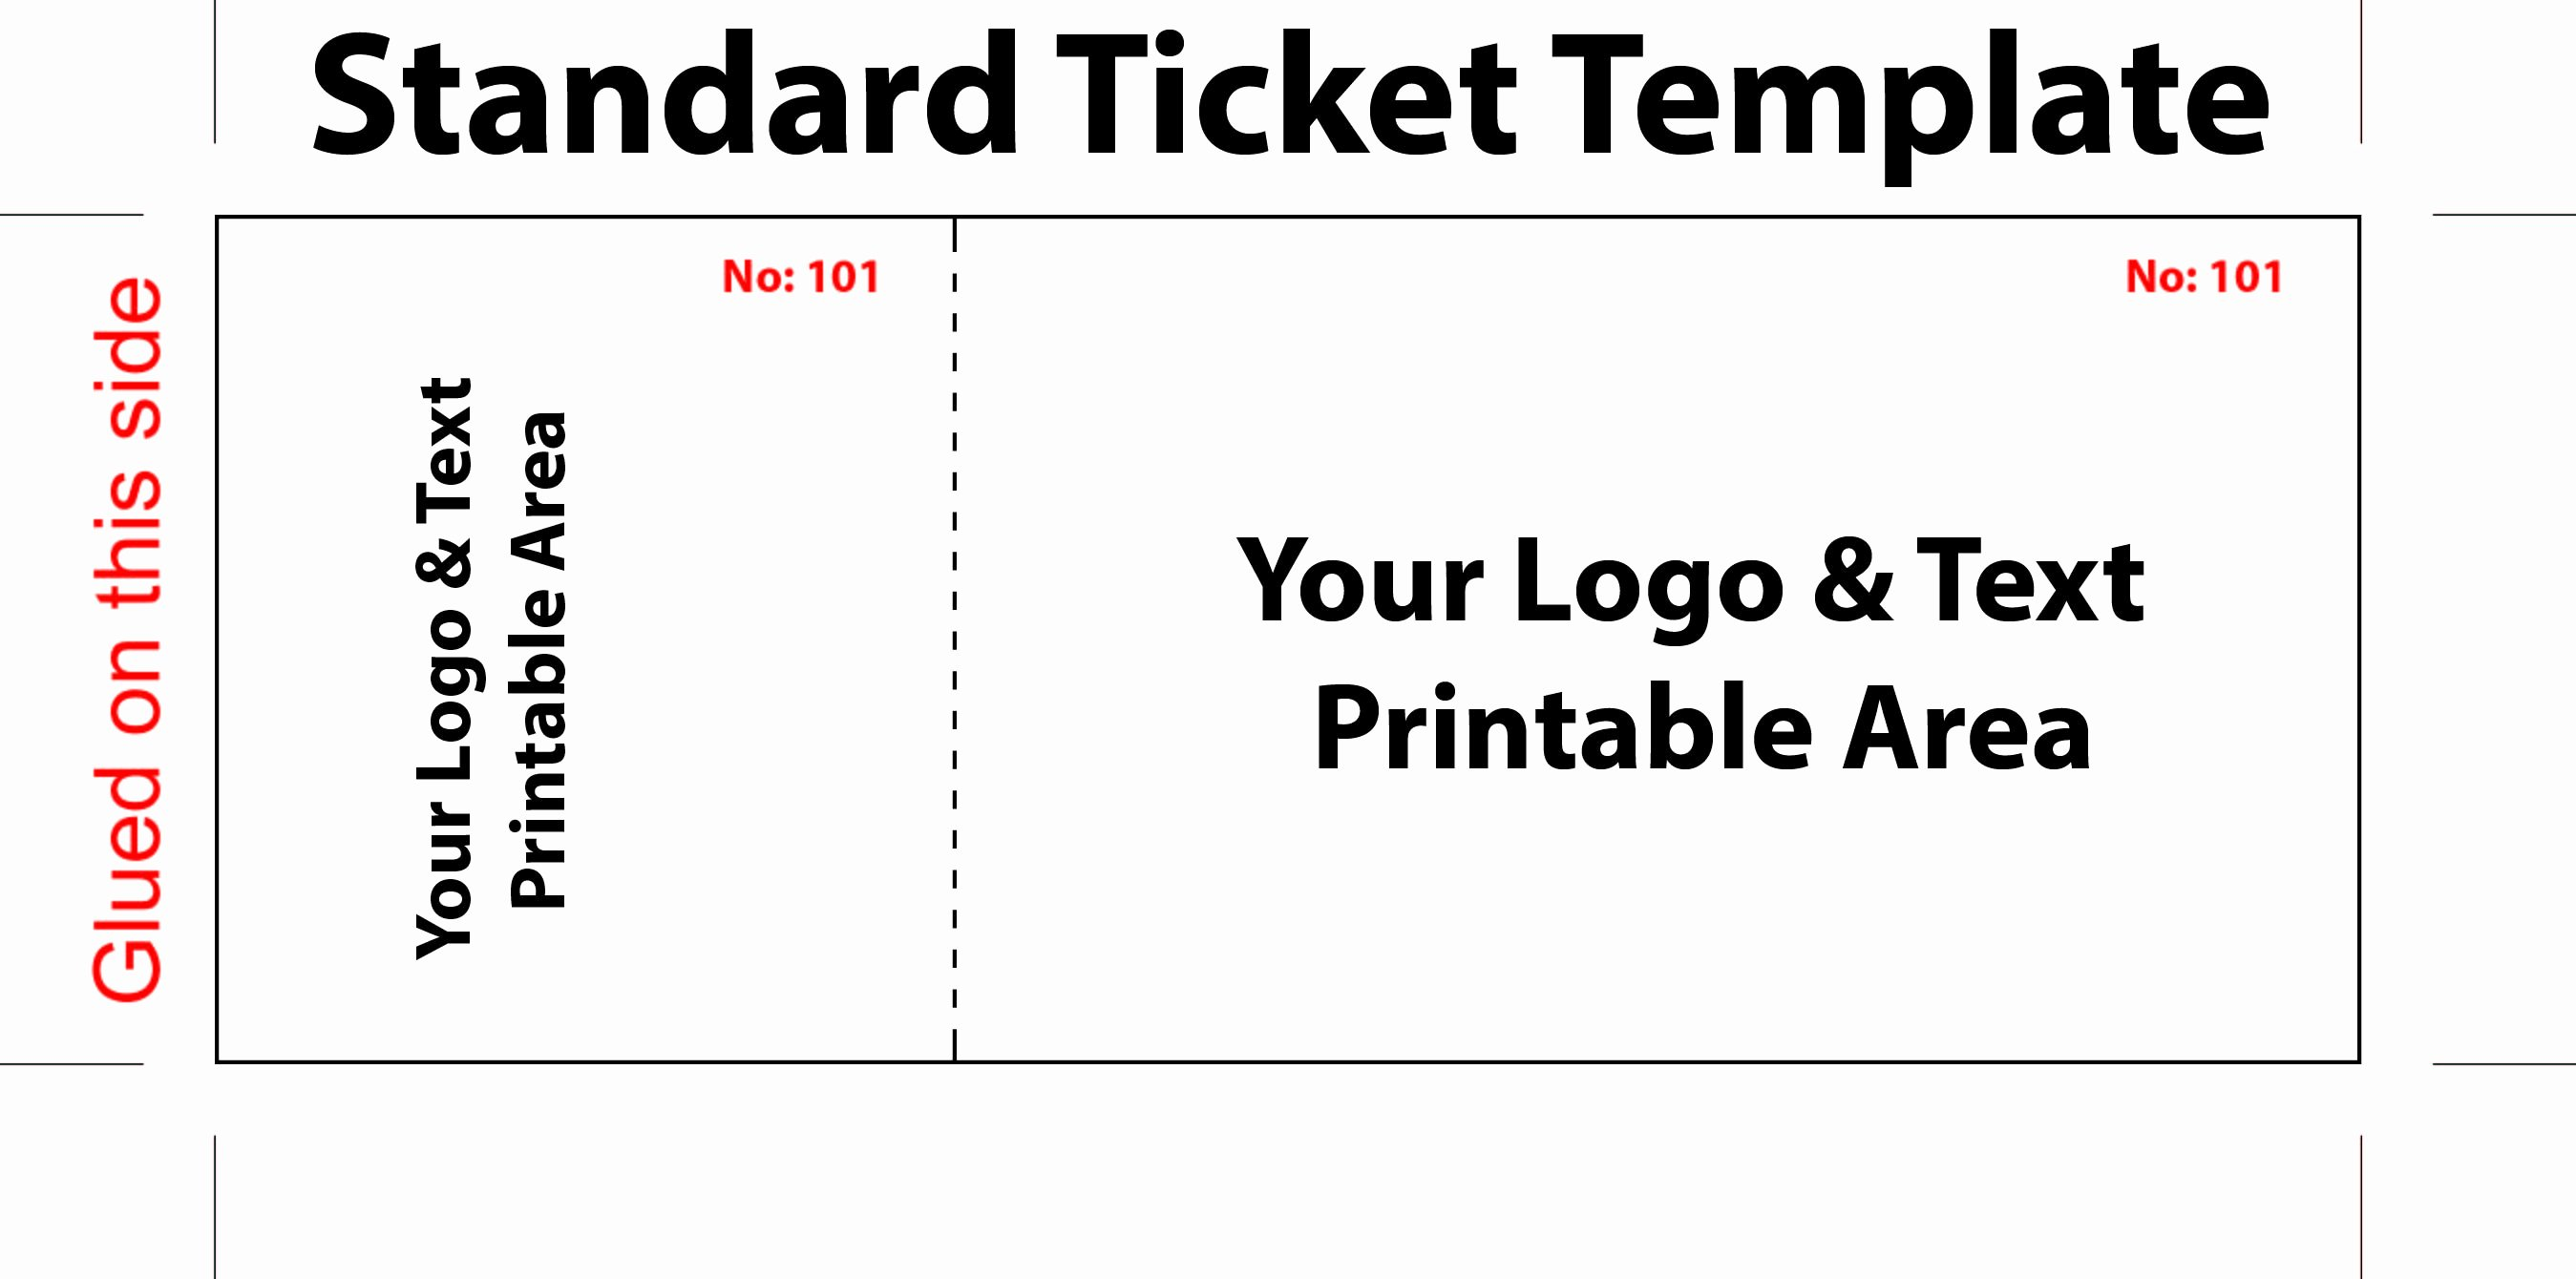 Printable event Ticket Template Free Beautiful 26 Cool Concert Ticket Template Examples for Your event